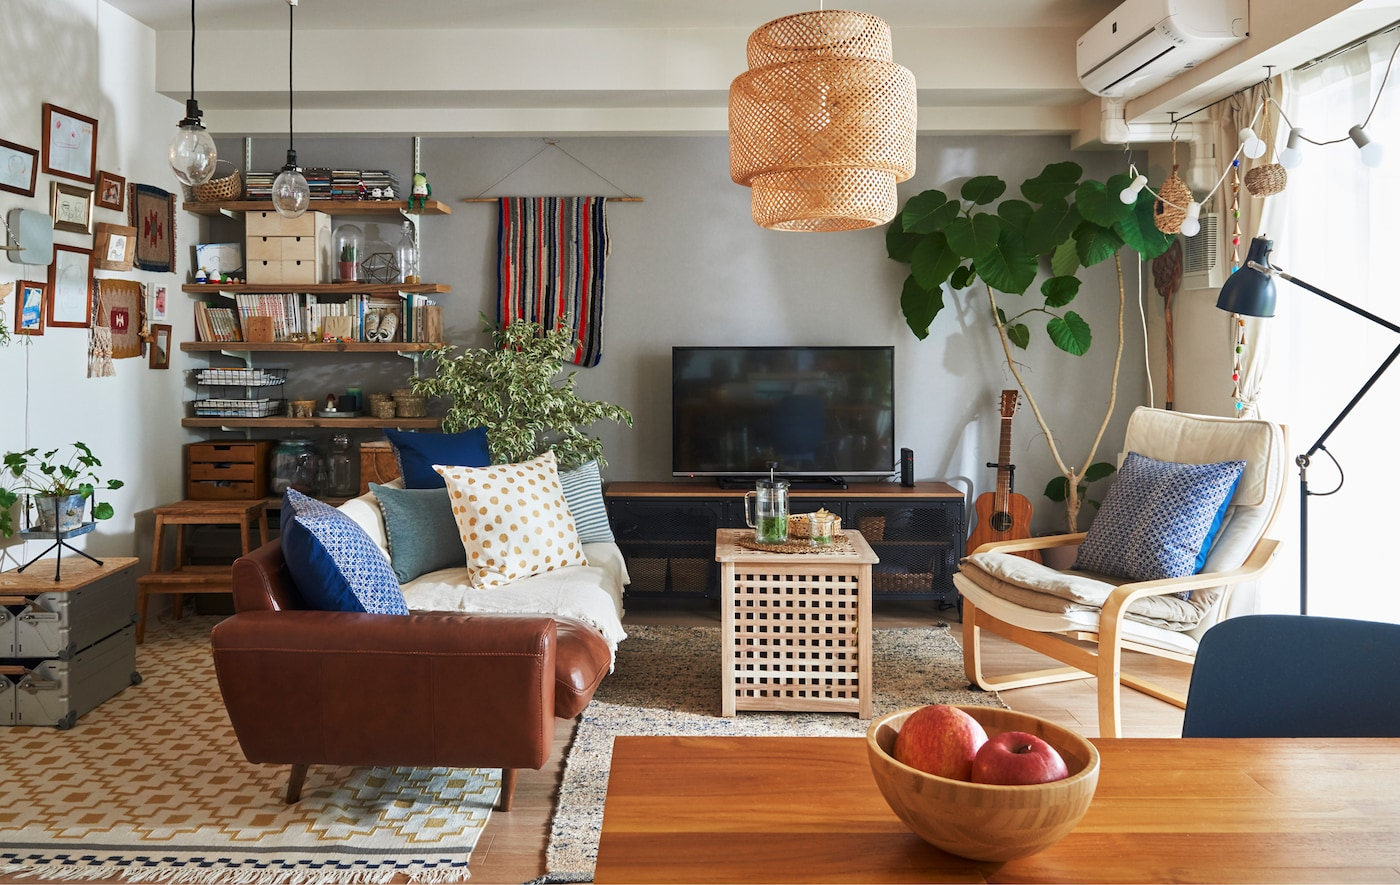 A living room with sofa, armchair, table, shelves and TV unit, and a large plant in the corner.